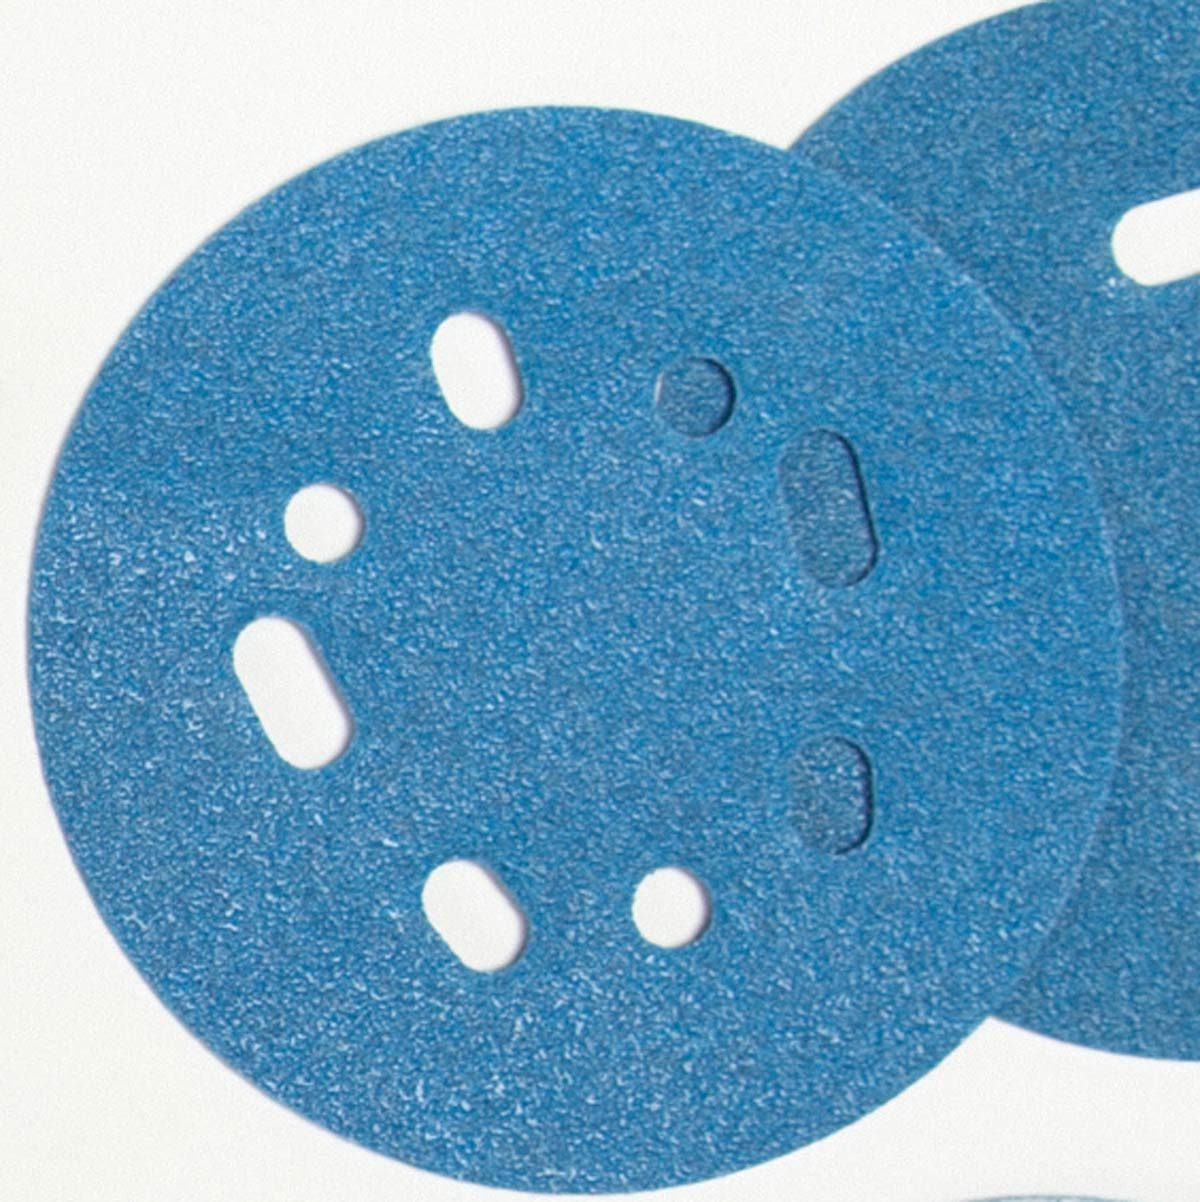 Random-orbit-sander-disc-sandpaper